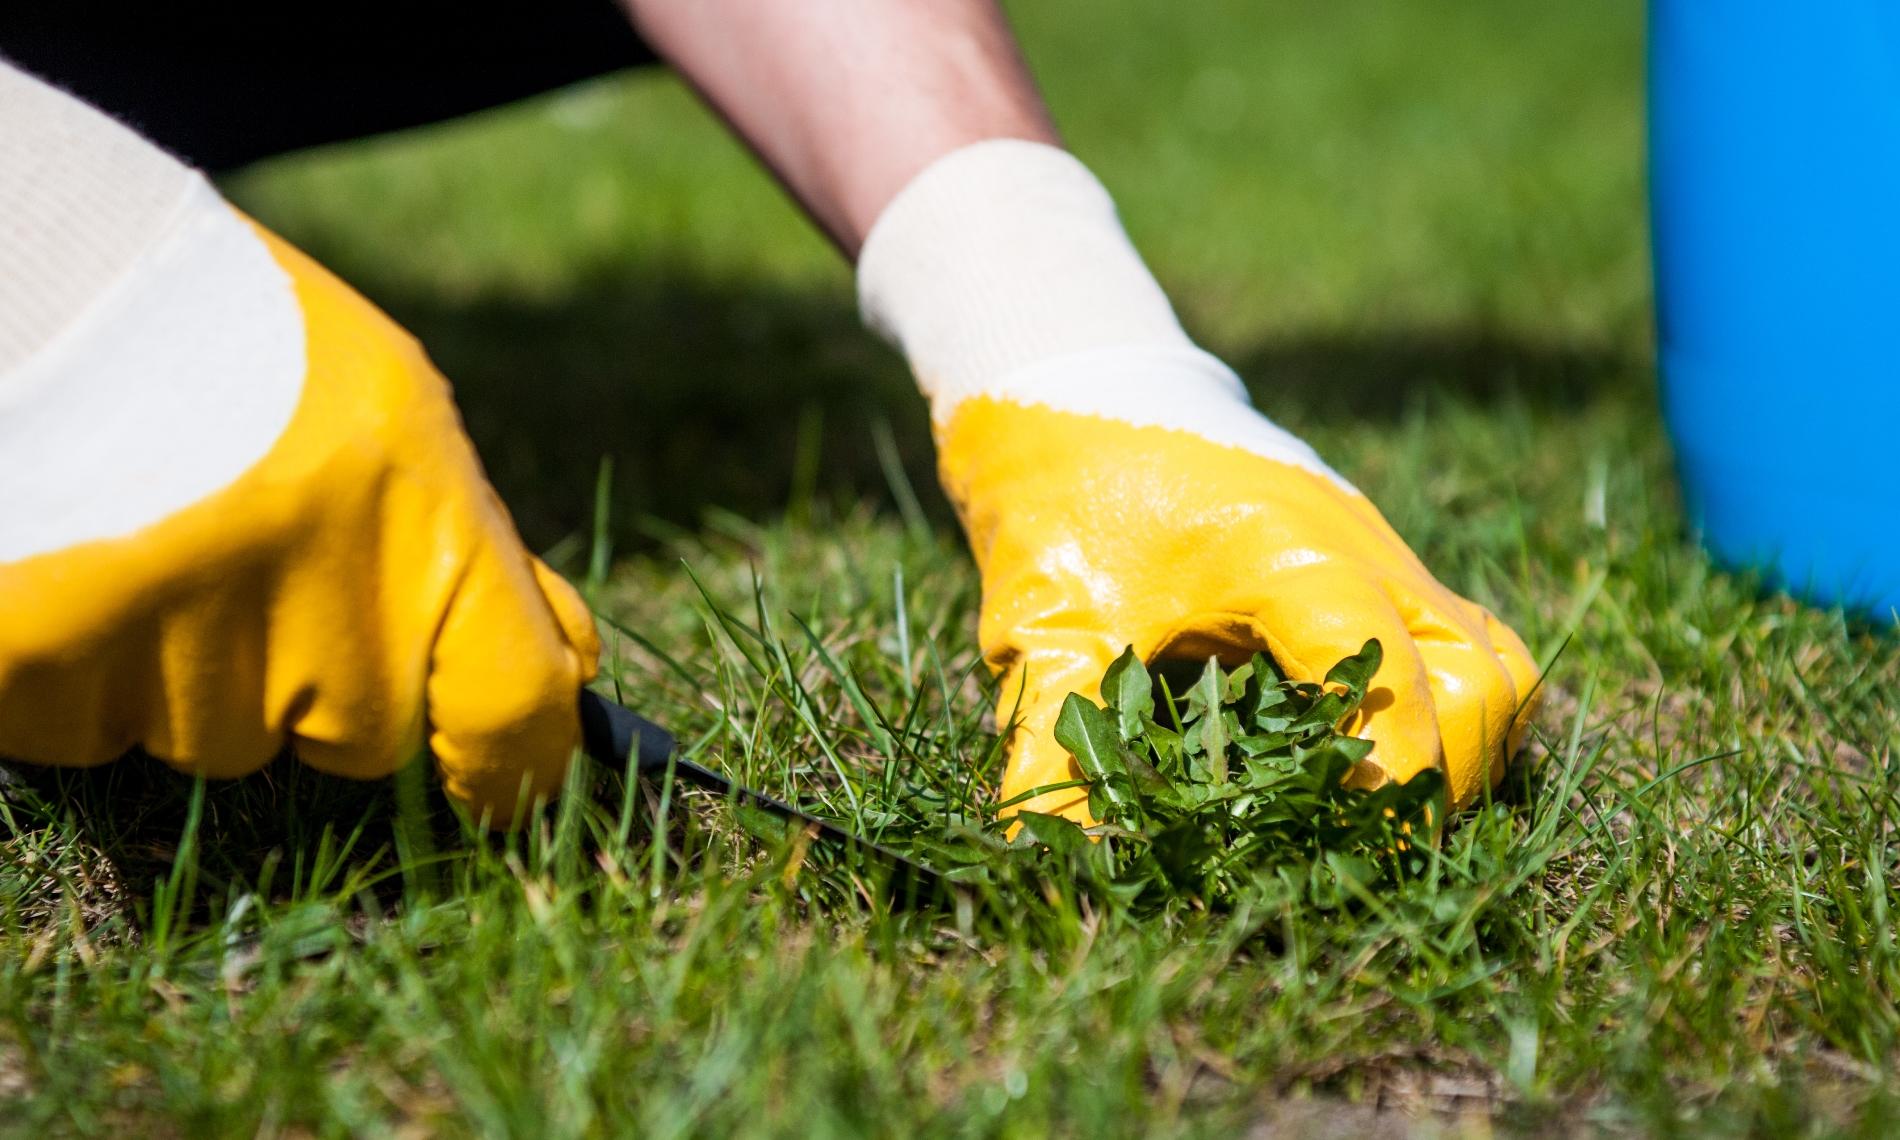 Manually remove weeds from the lawn